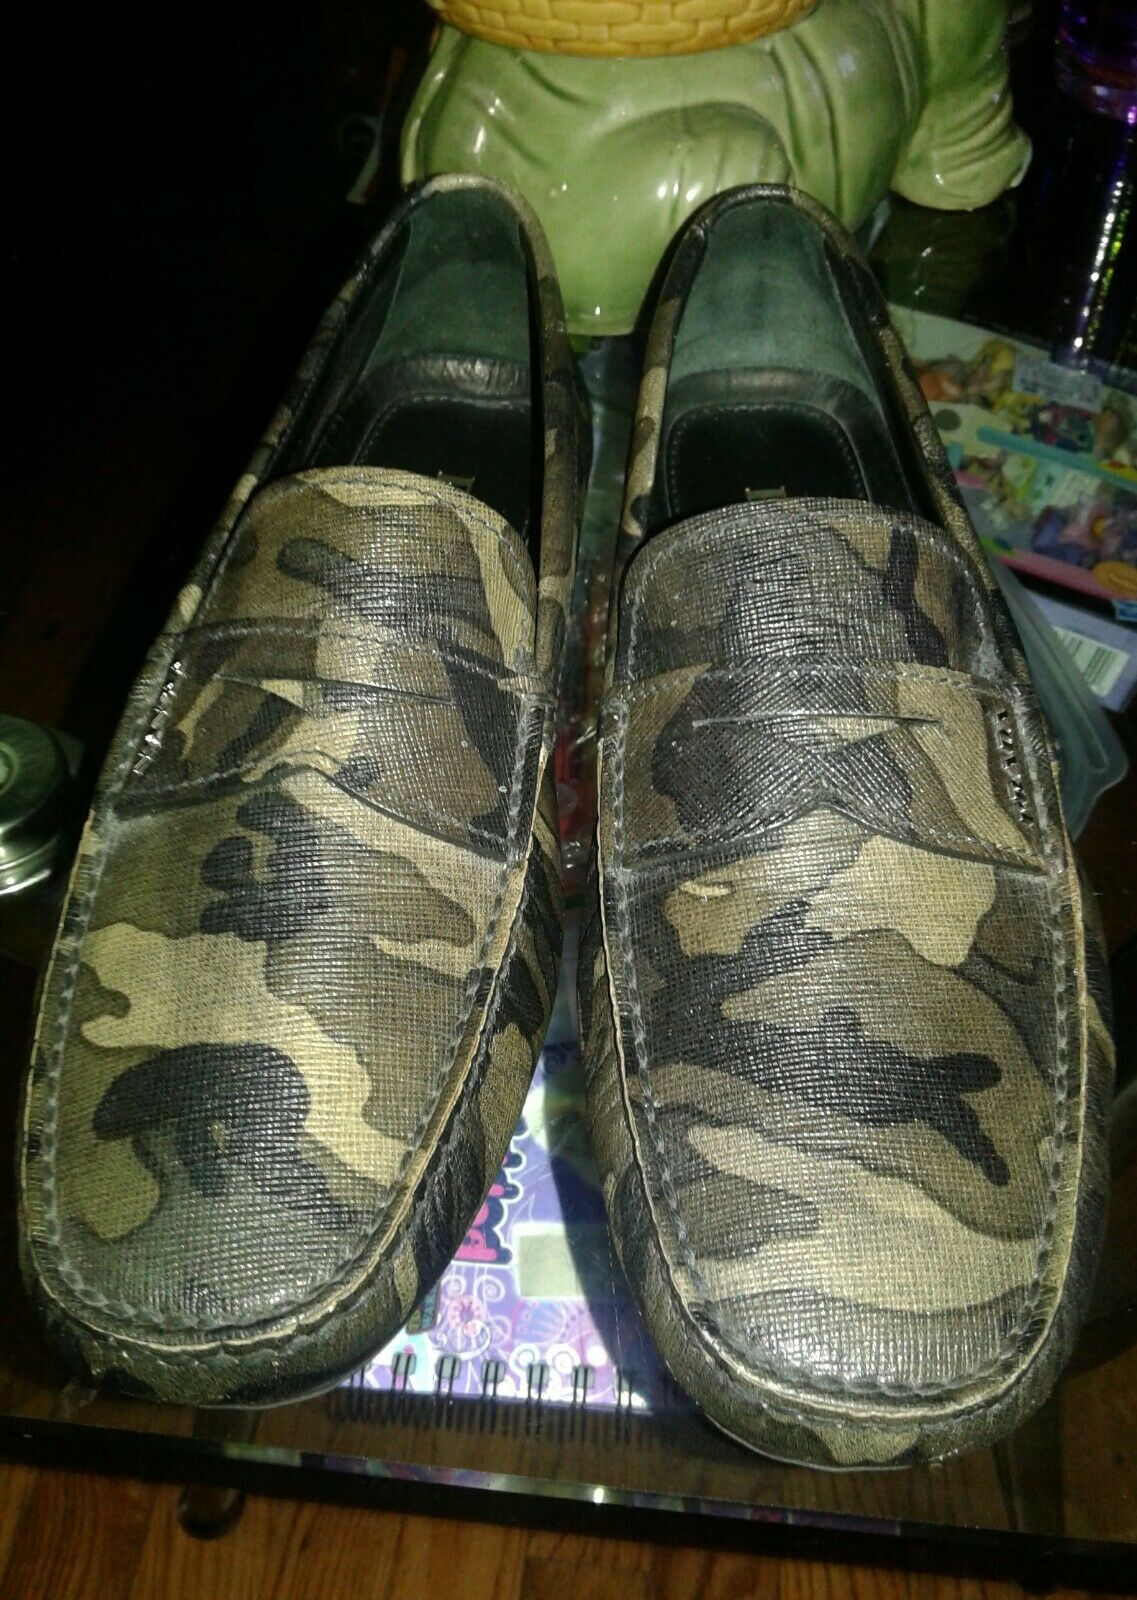 MEN'S PRADA Shoes Camo Loafers. Sz prada 7.5 USA 8.5